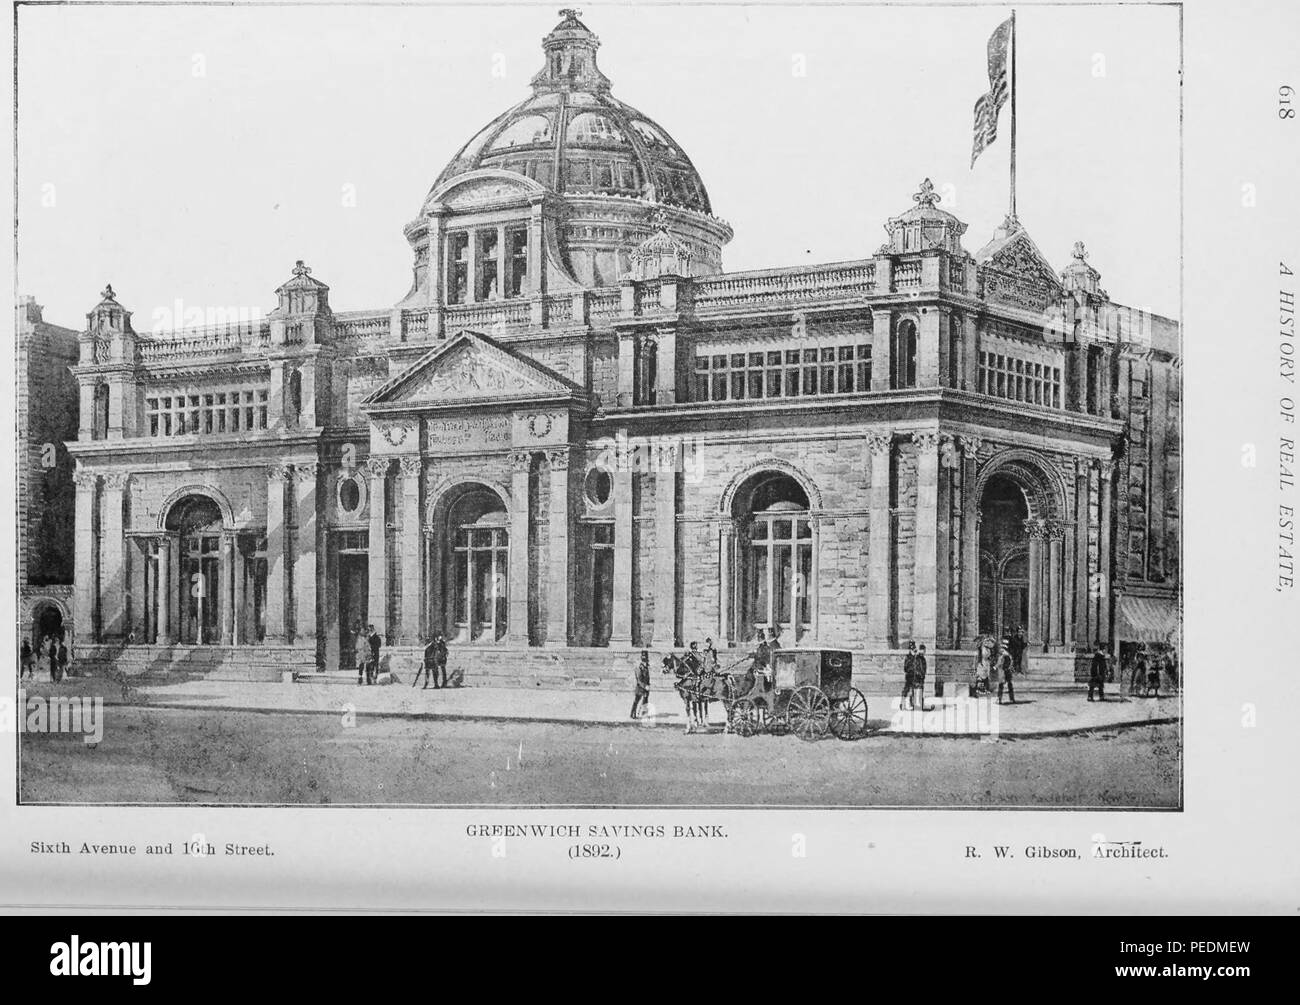 Engraving Of The Original Greenwich Savings Bank Building At 620 6th Avenue New York City 1898 Courtesy Internet Archive